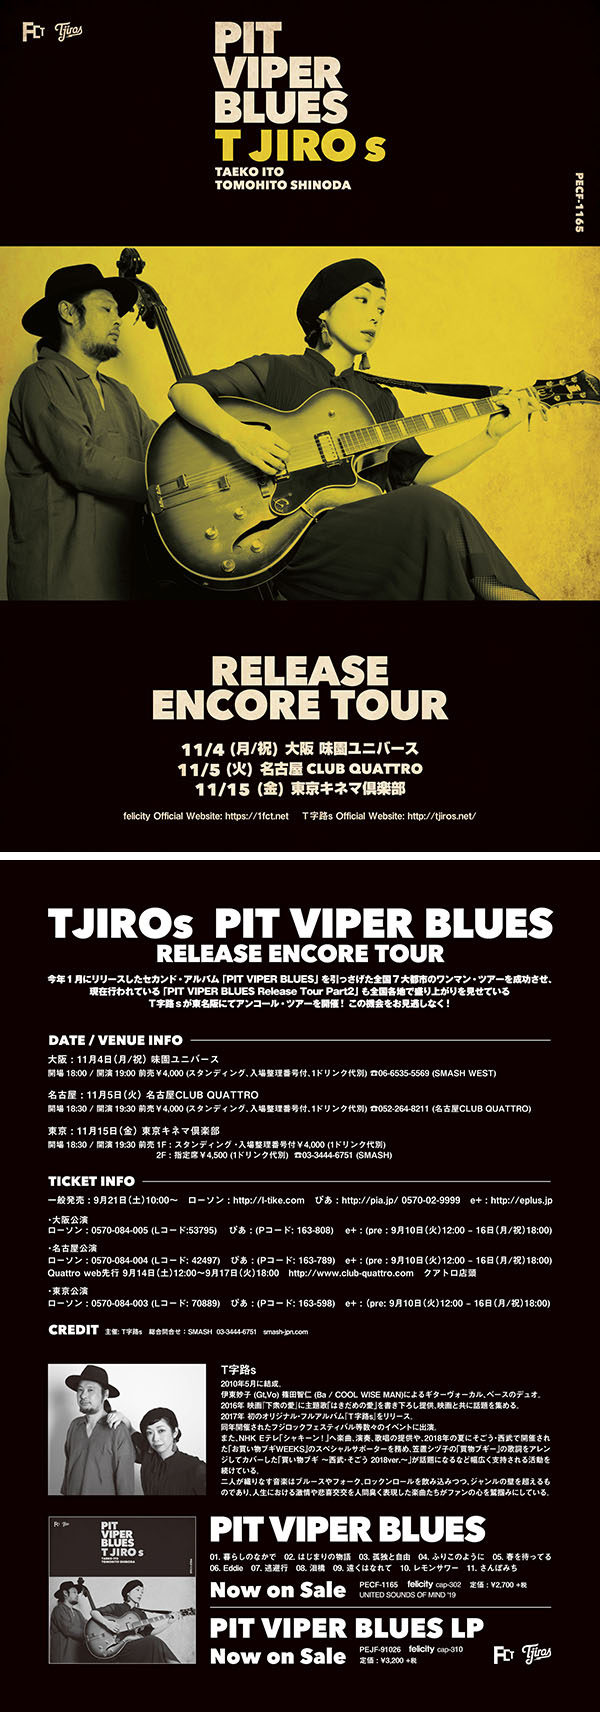 PIT VIPER BLUES Release Encore Tour